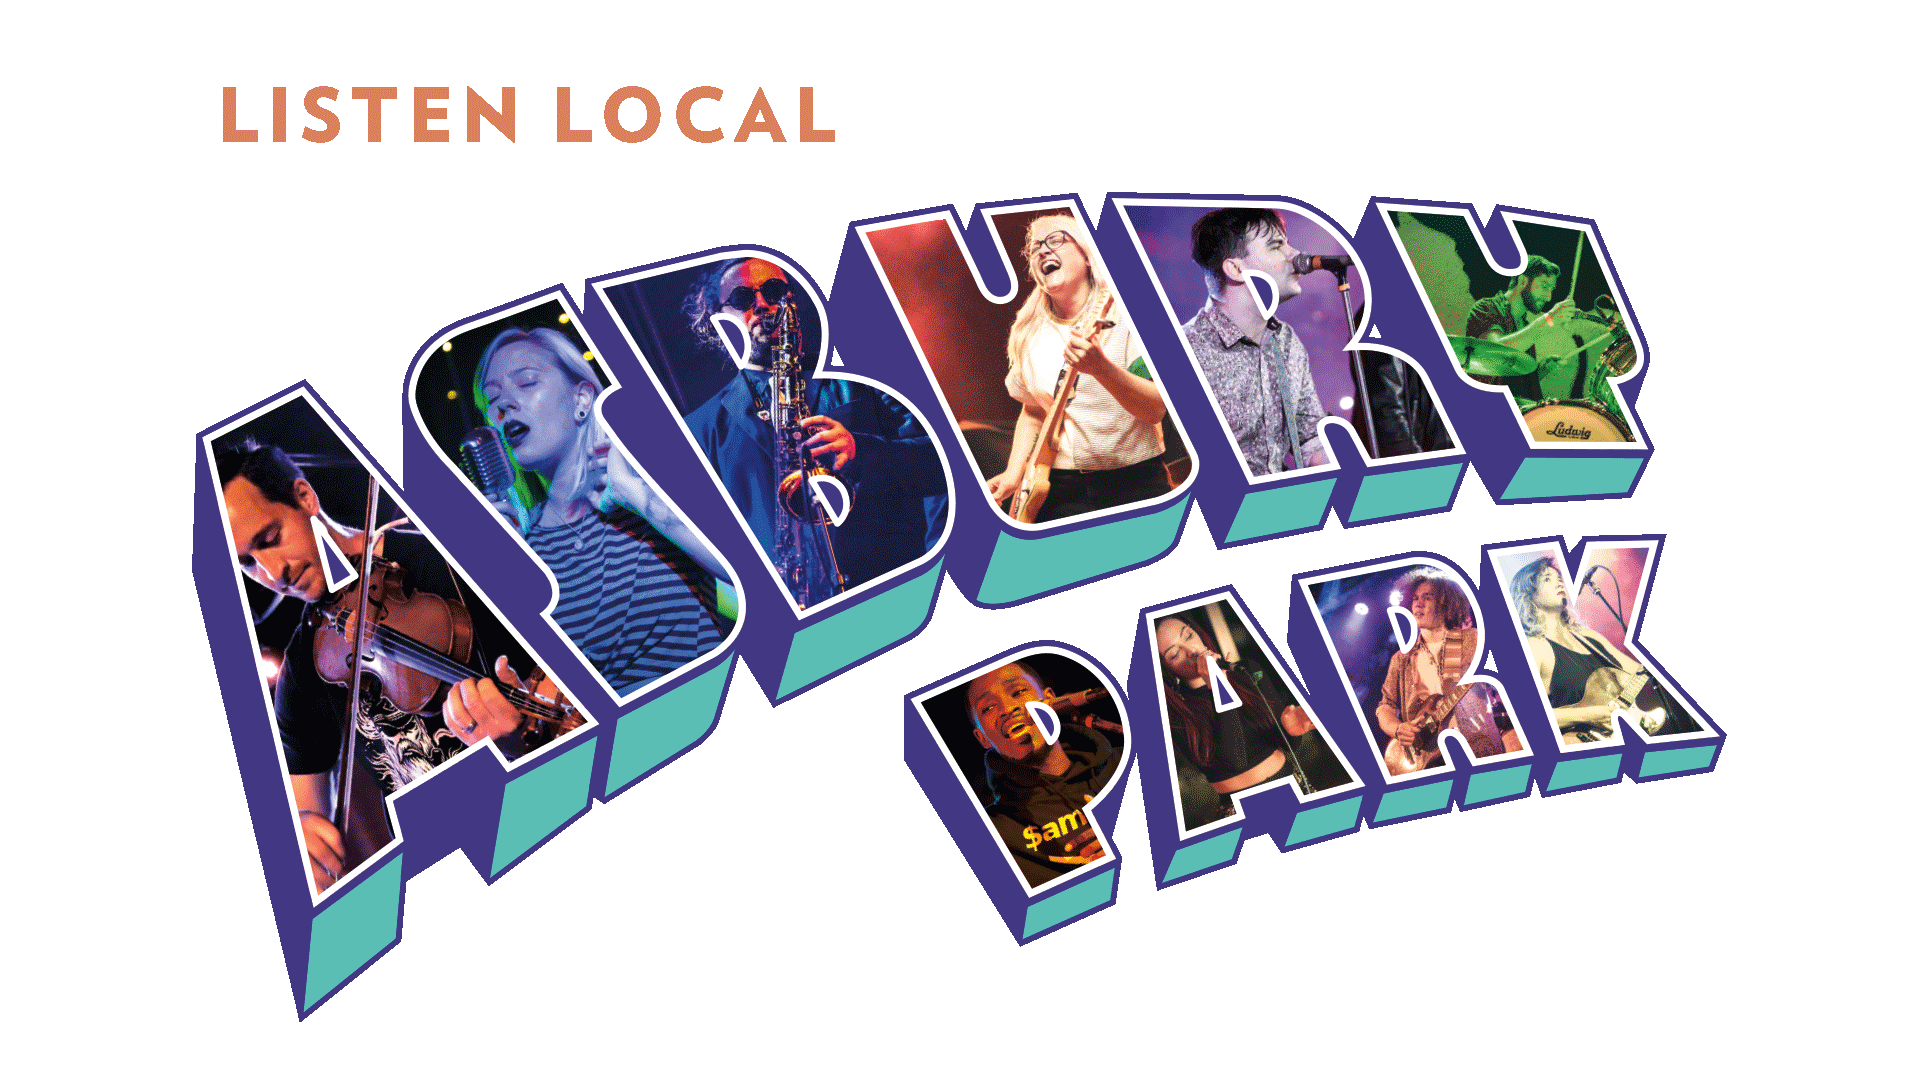 Listen Local - Asbury Park - Live Music Loyalty